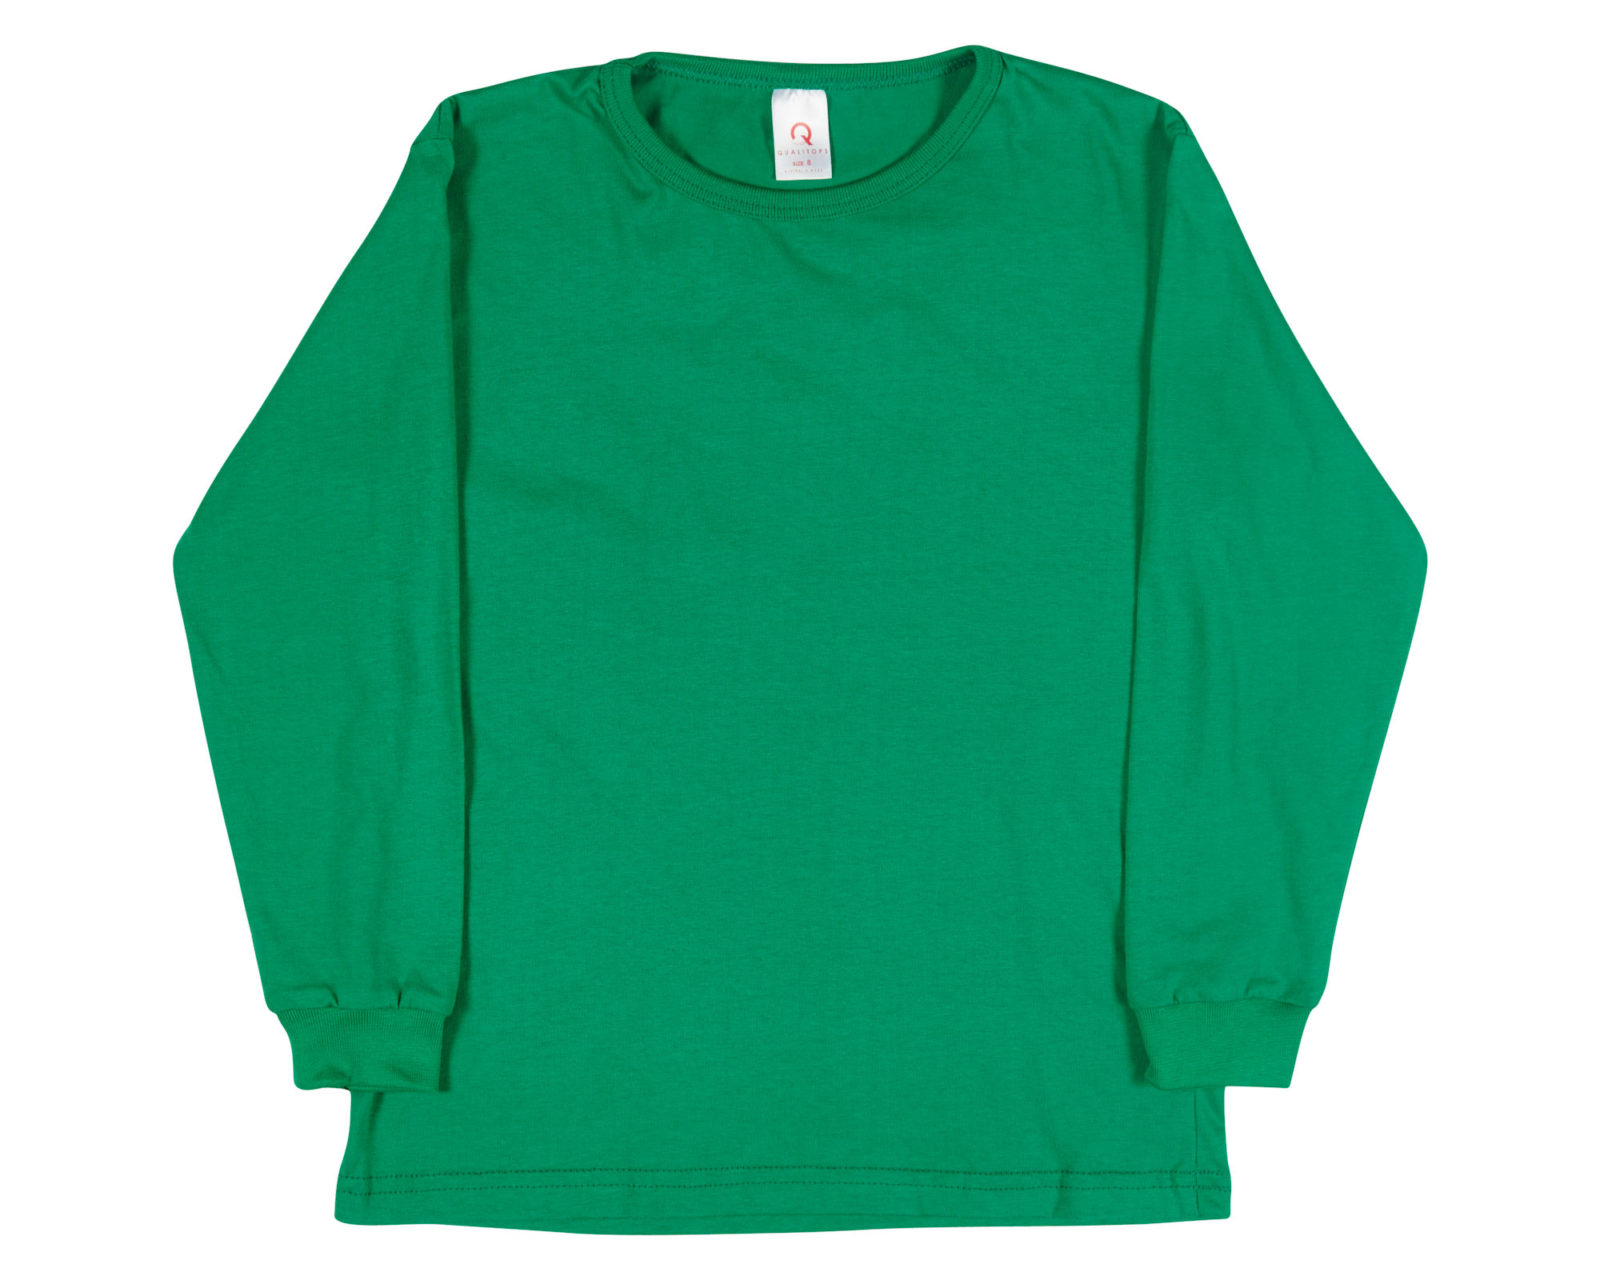 Qualitops Kids Long Sleeve Tee Cotton Australian made clothing